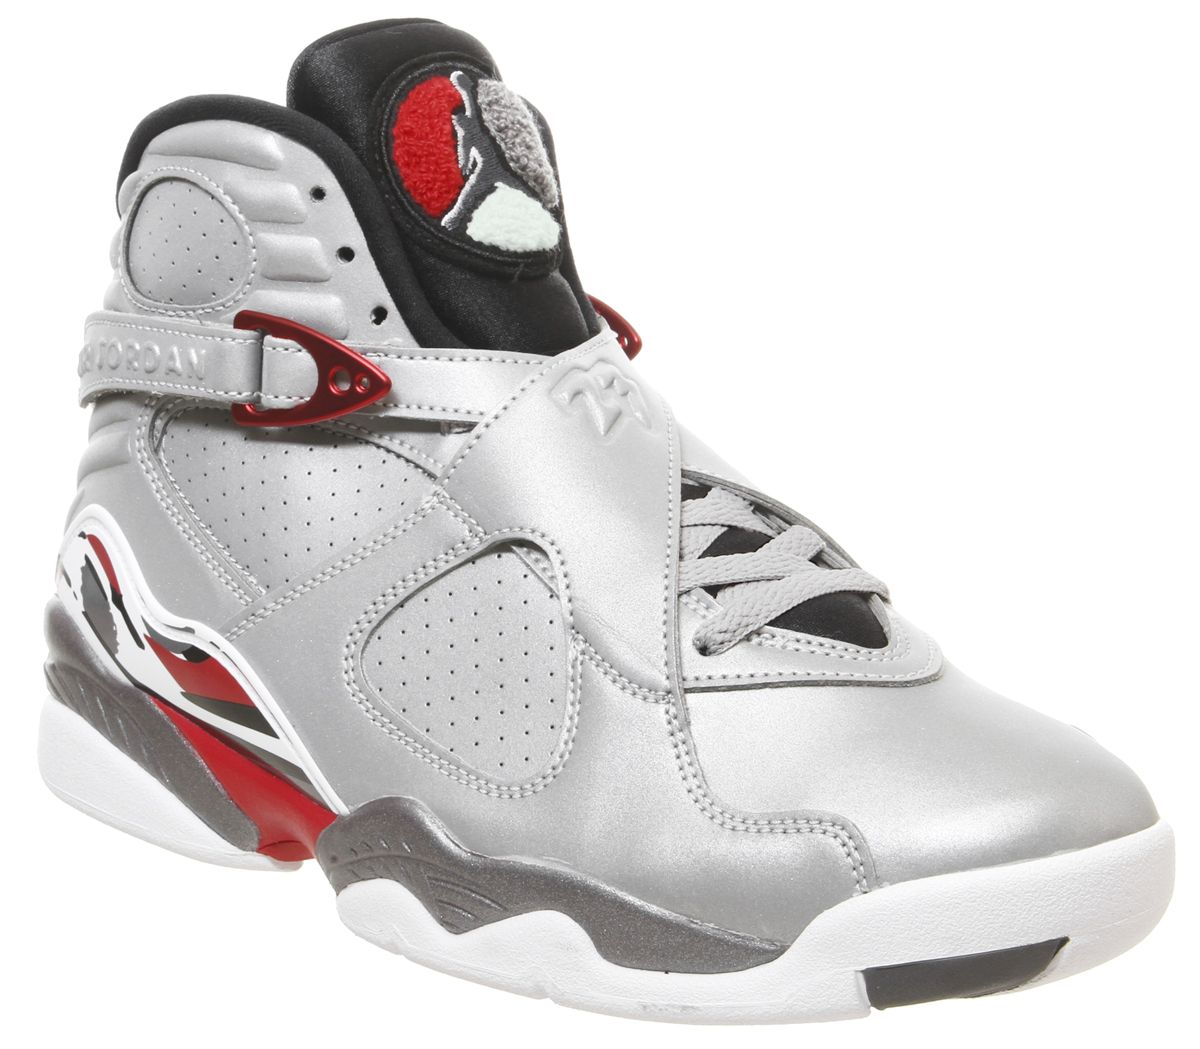 sélection premium 2bf4e 0dc8a Jordan Air Jordan 8 Retro Trainers Reflect Silver Hyper Blue ...